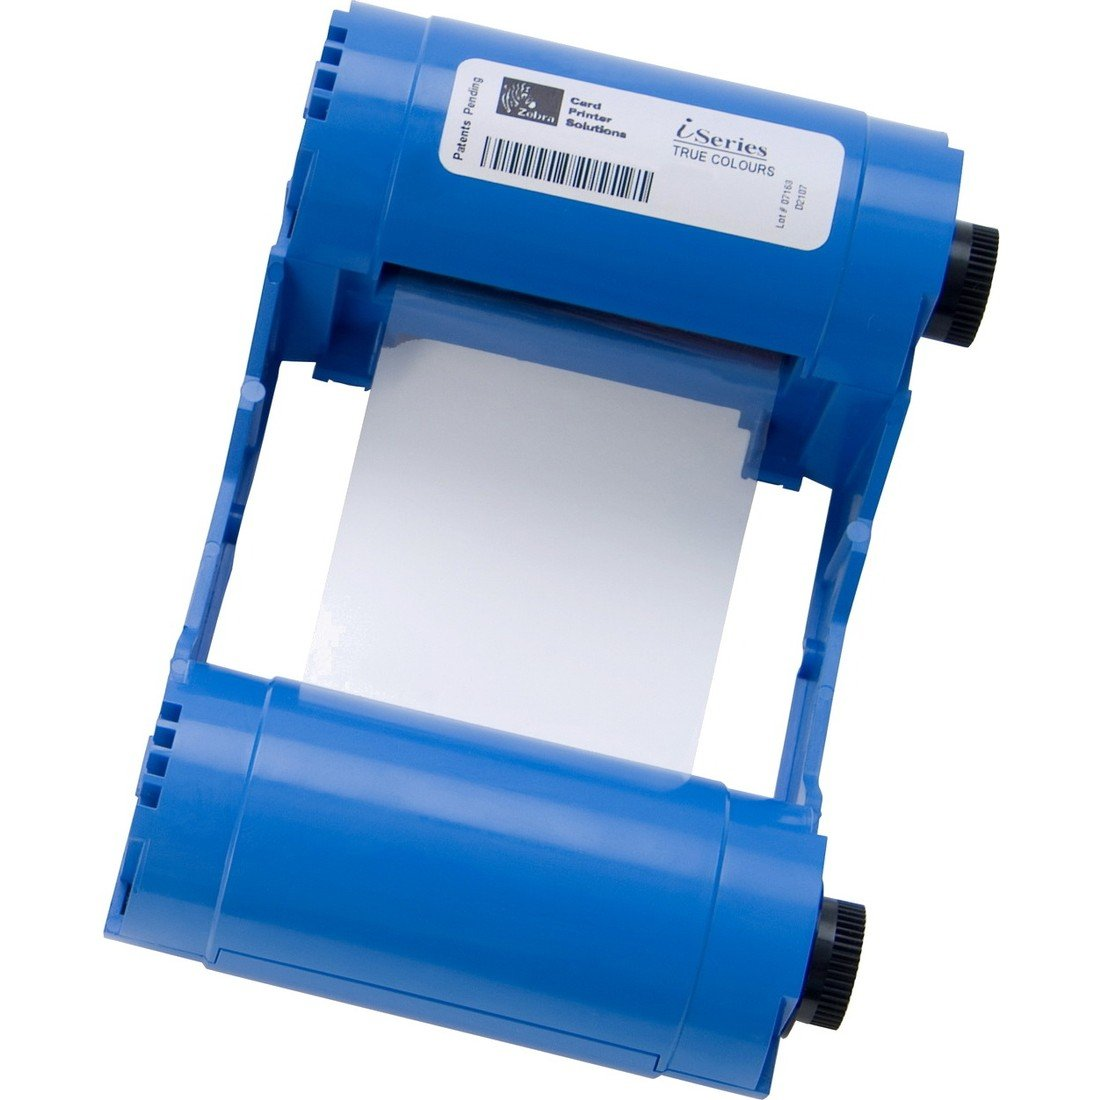 【T-ポイント5倍】 Zebra True card 800017-248 I for Series Cartridge Ribbon Printer, with 1 Cleaning Roller for P120I Printer, YMCKOK True Color by Zebra card B00FJW4TRO, 住まeるデパート:029e185d --- a0267596.xsph.ru